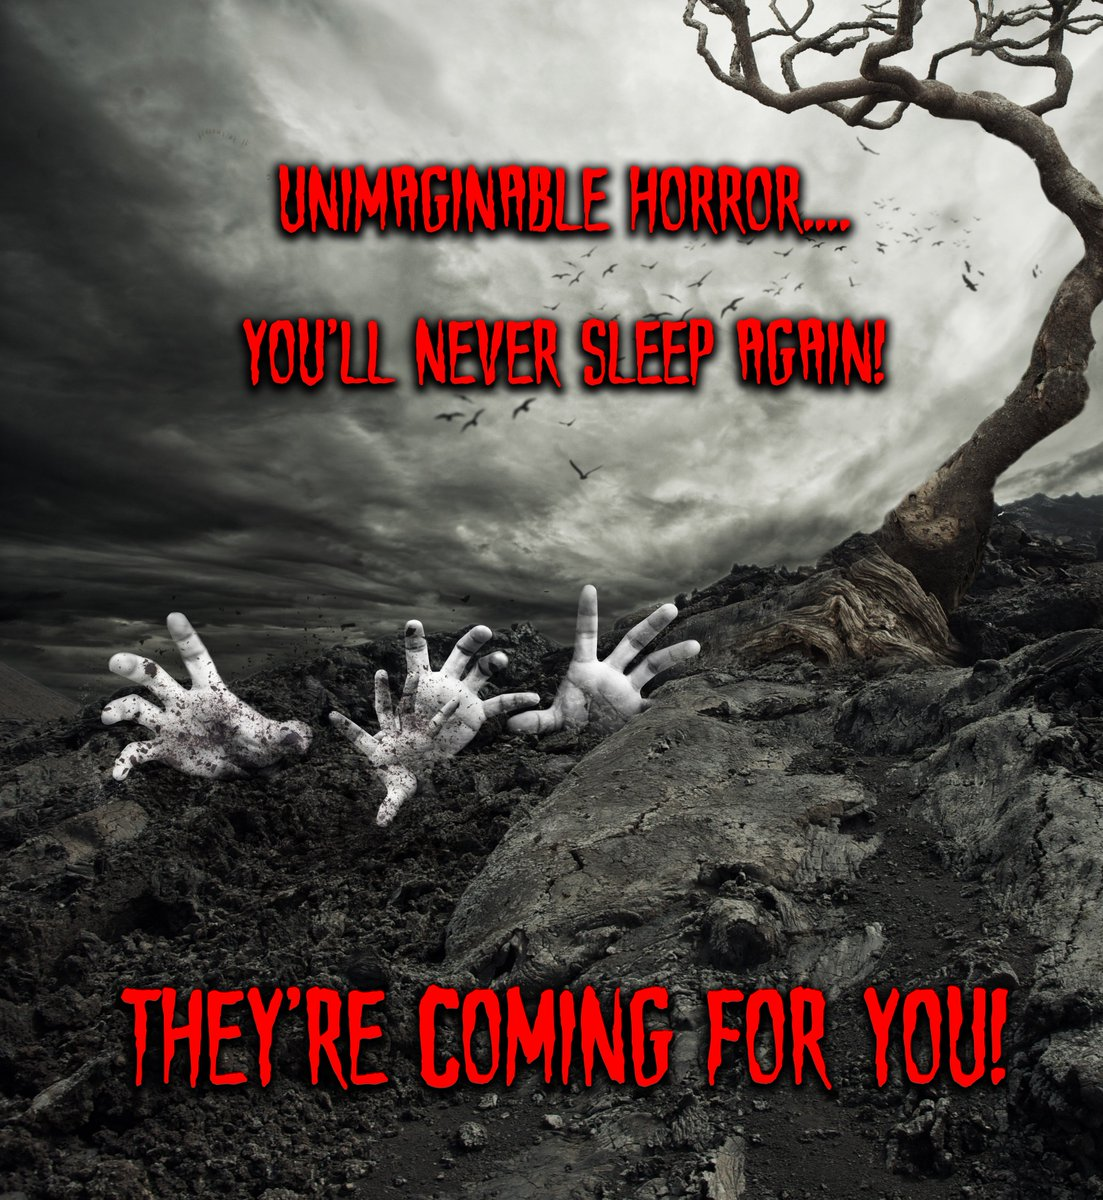 It will take your breath away...all of it! http://bit.ly/EDBOOKS   #horror #paranormal   by #AuthorEllie  get it now  http://www.amazon.com/dp/B078PH4143/?tag=bookclubpro-20 … https://www.bookclubpro.com/books/335   #iartg  #asmsg  #bookboost #bookplugs   #RT